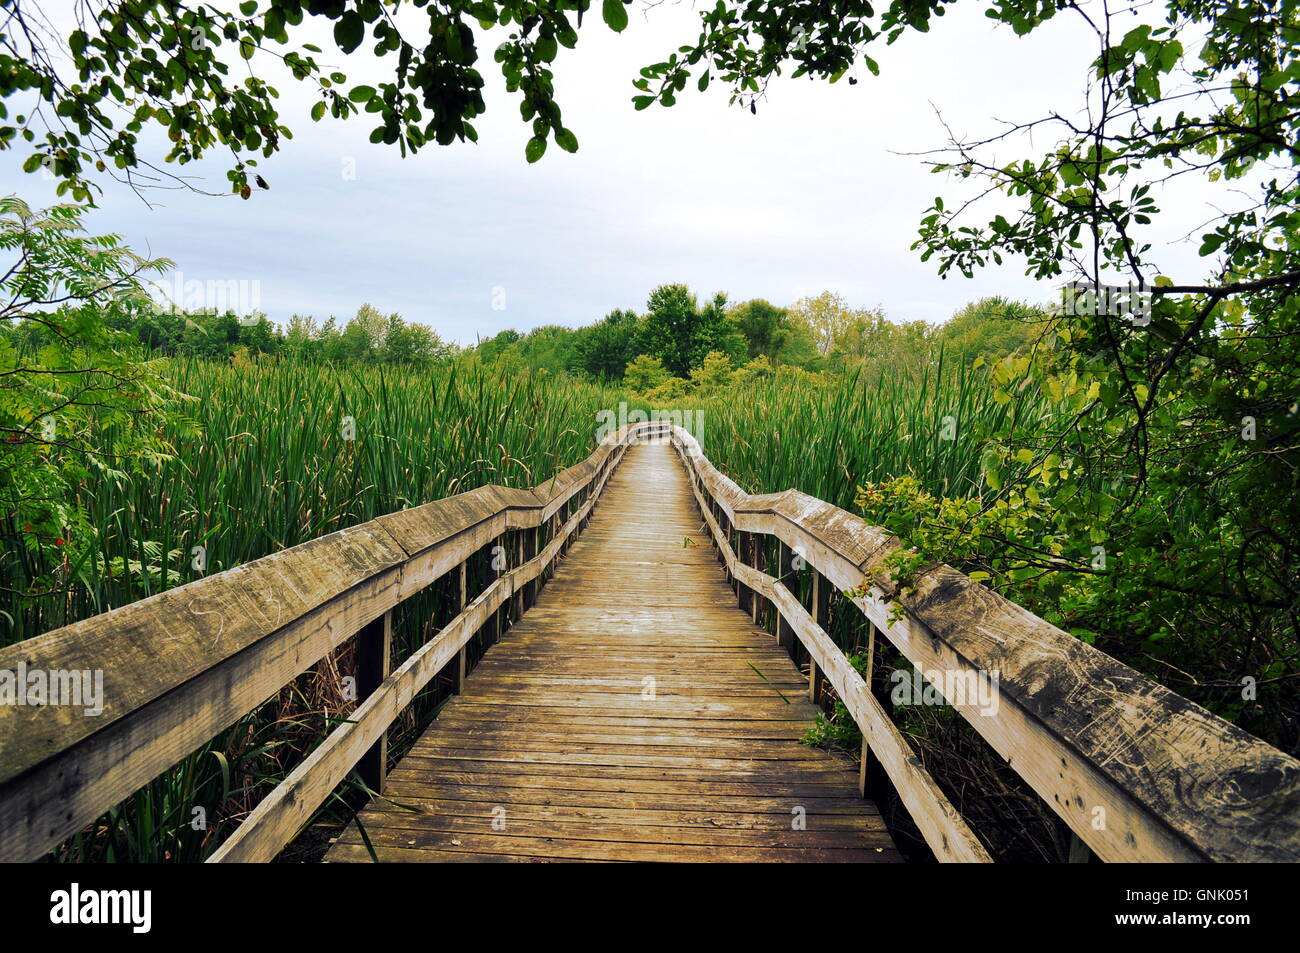 Adventure lays before you. What lies beyond the bridge? - Stock Image